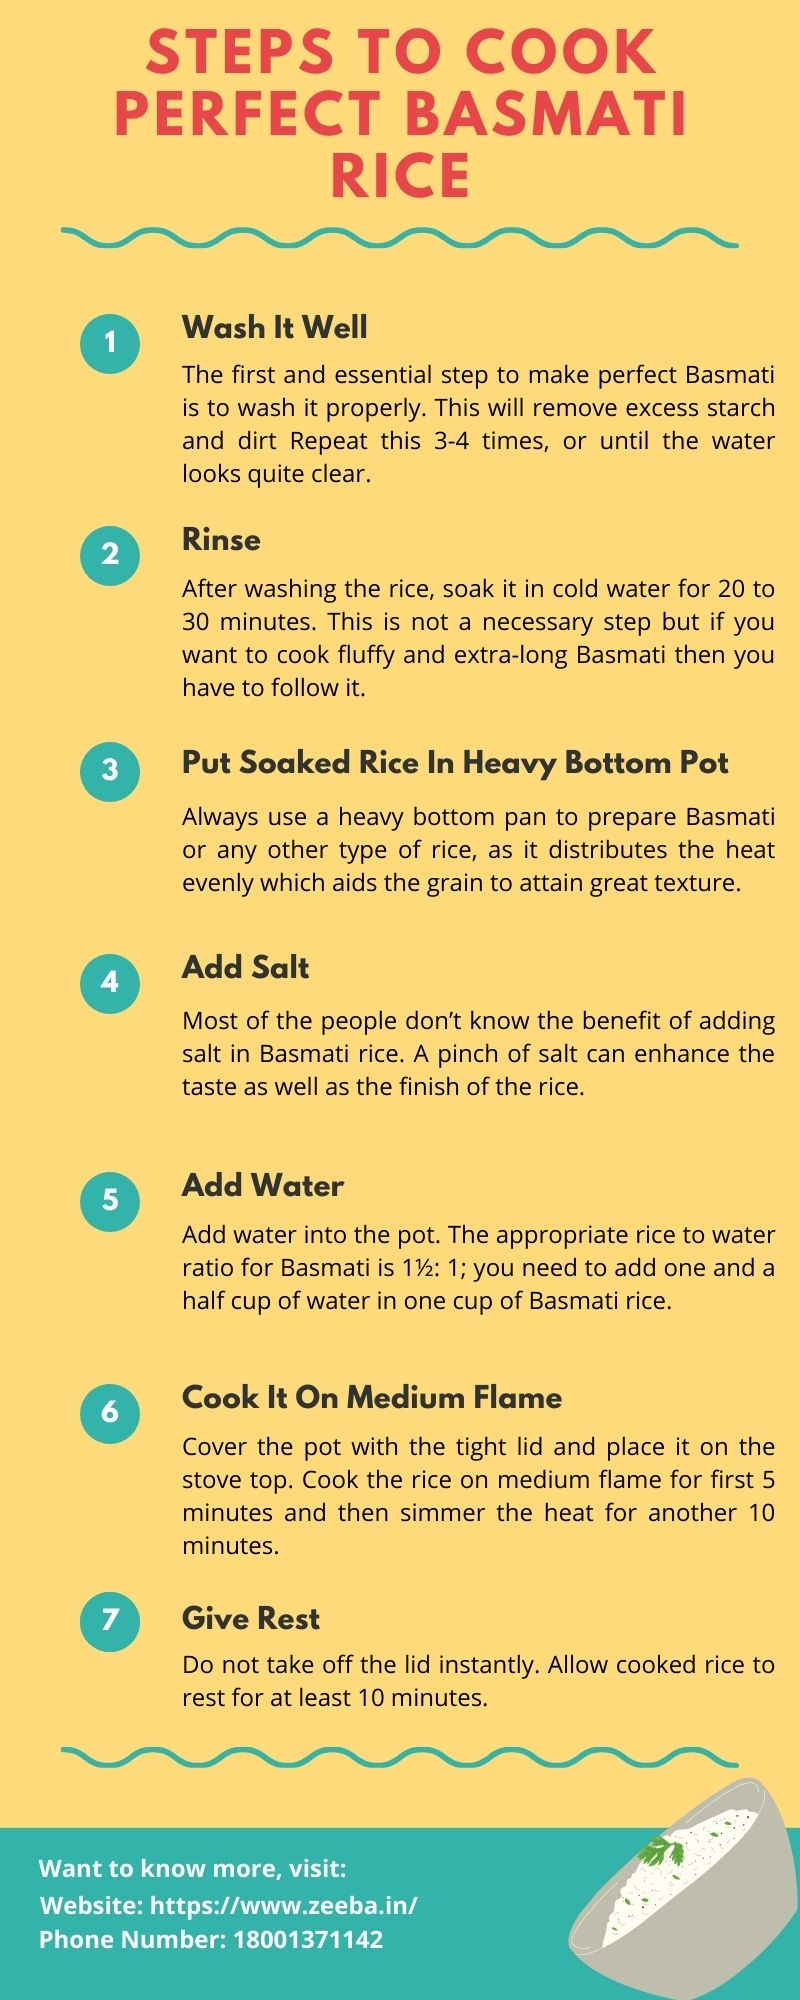 Steps To Cook Perfect Basmati Rice